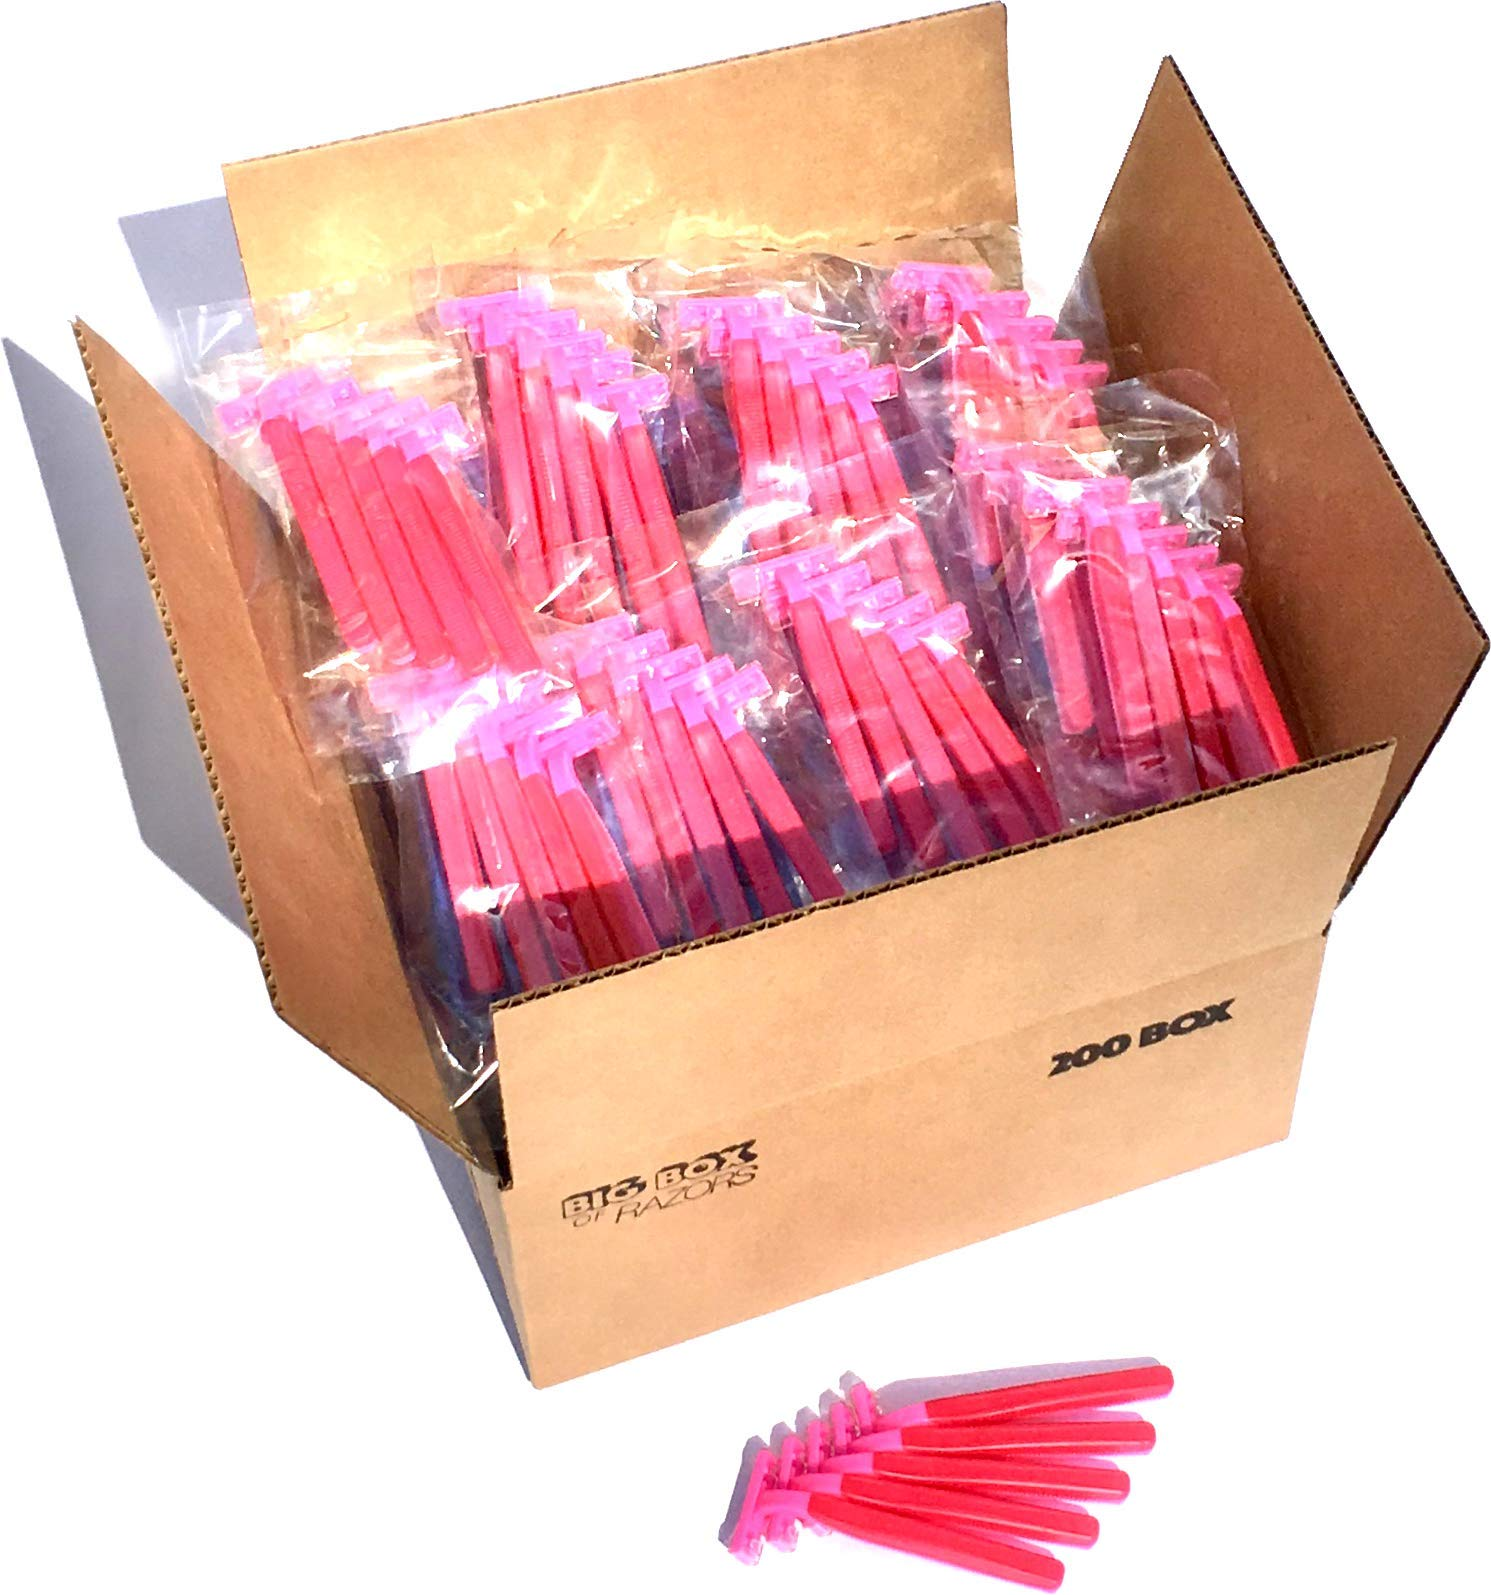 200 Box of Pink Razor Blades Disposable Stainless Steel Hospitality Quality Shavers High End Twin Blade Razors for Men and Women with Aloe Vera Lubrication Strip by Big Box of Razors